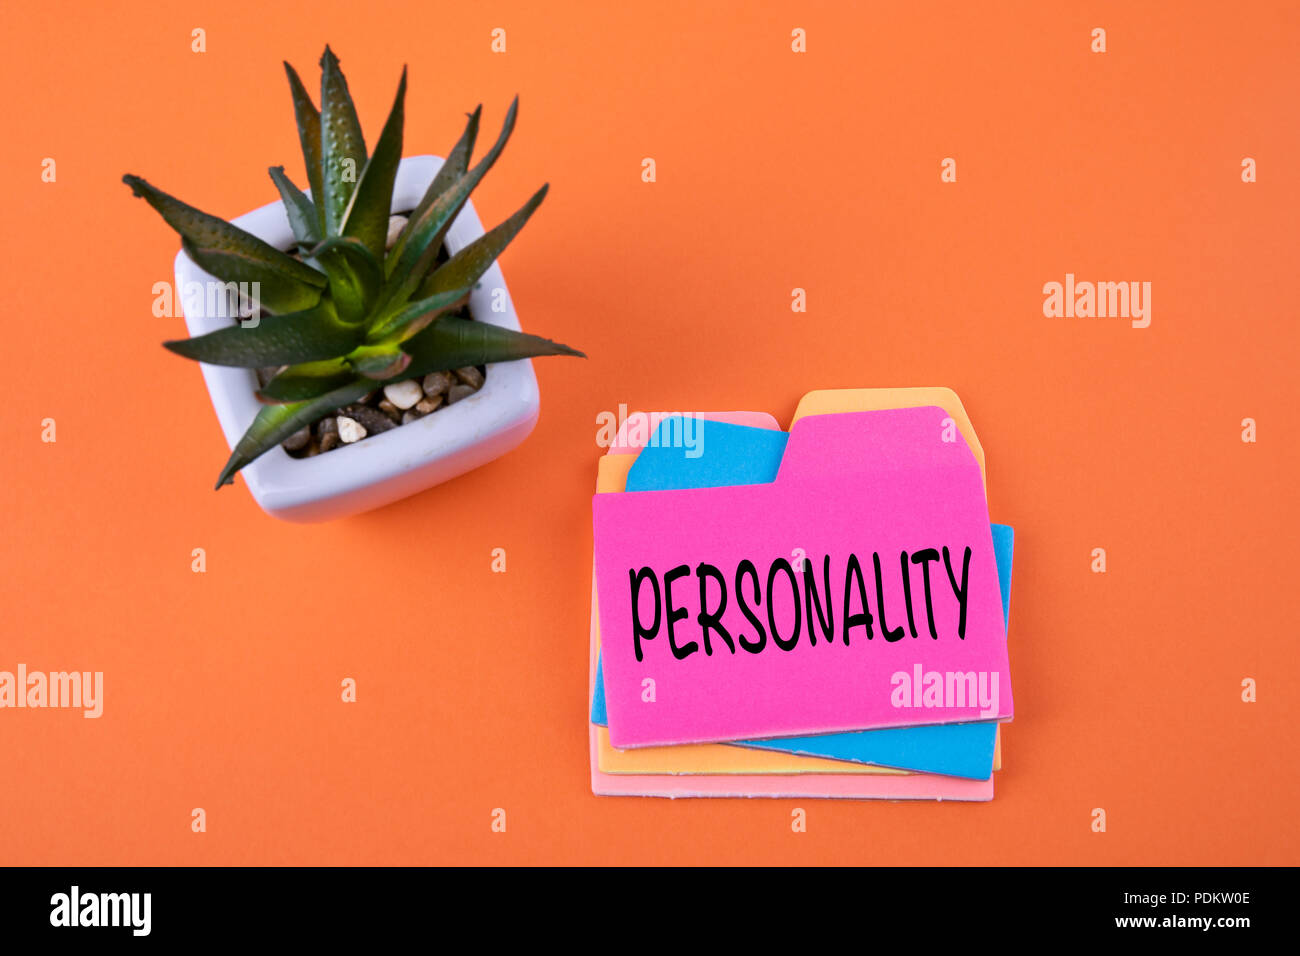 Personality, Business Concept - Stock Image